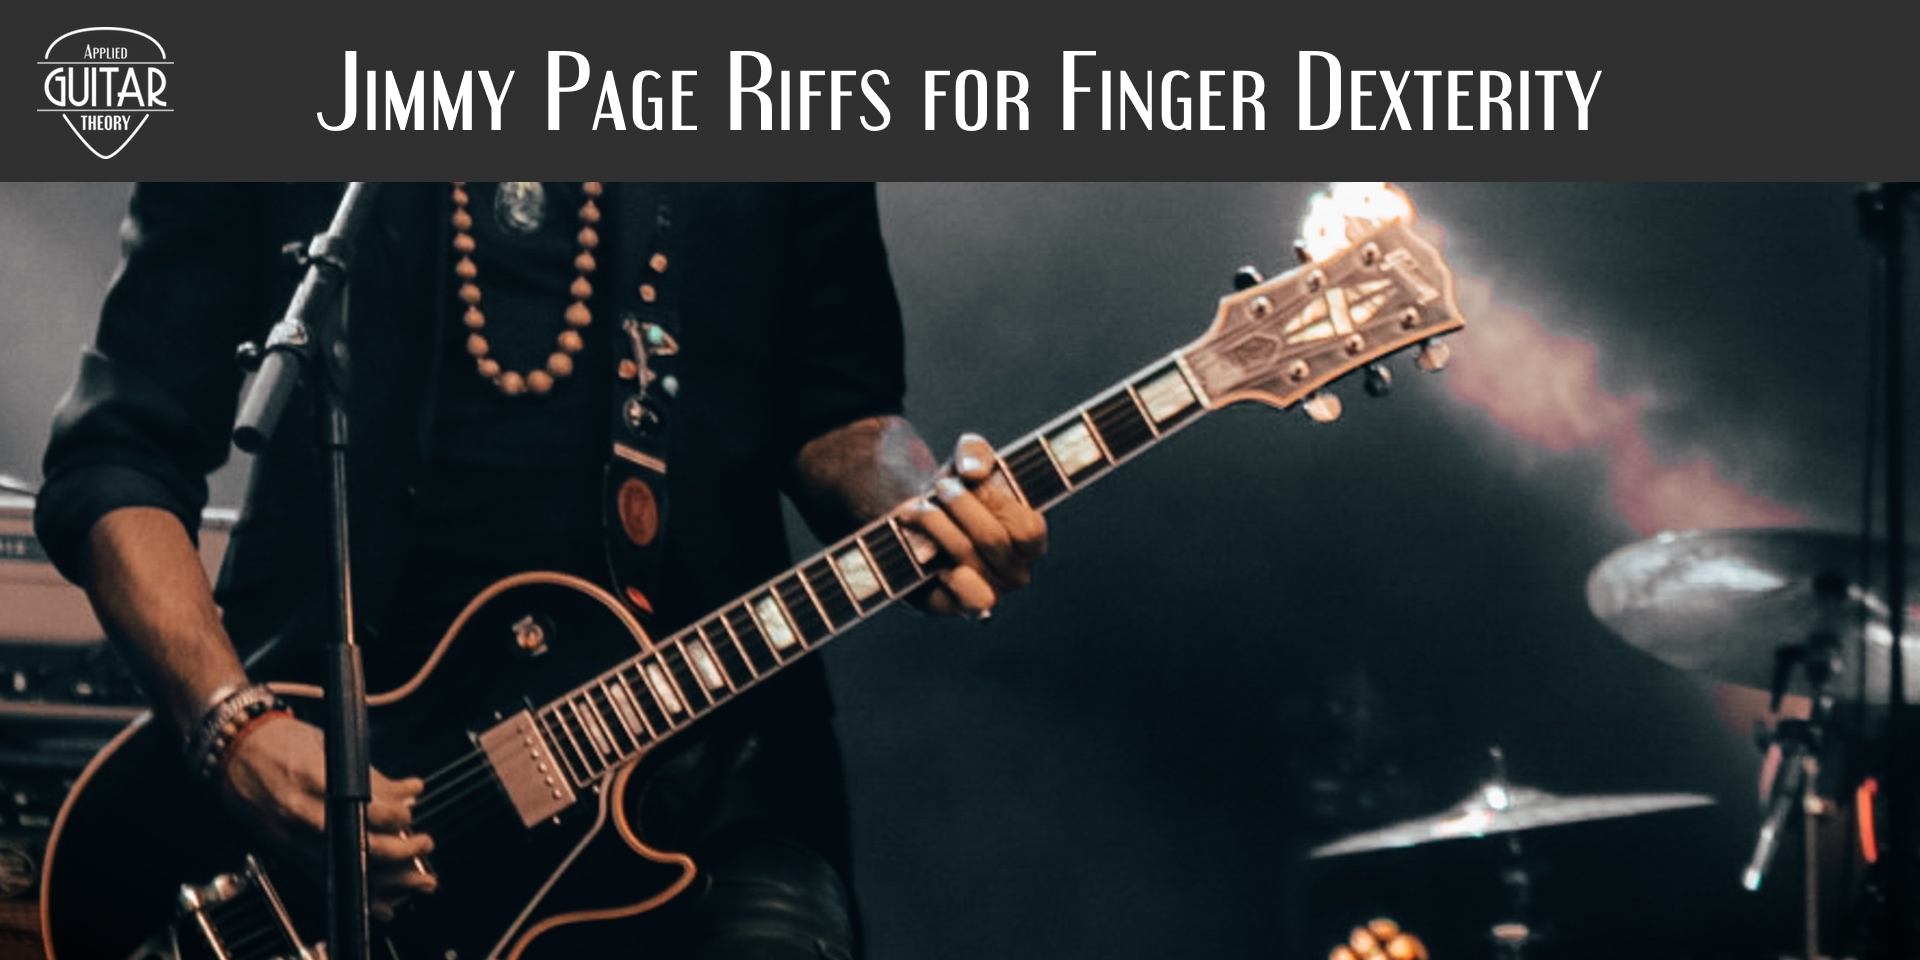 Jimmy Page riffs for finger dexterity